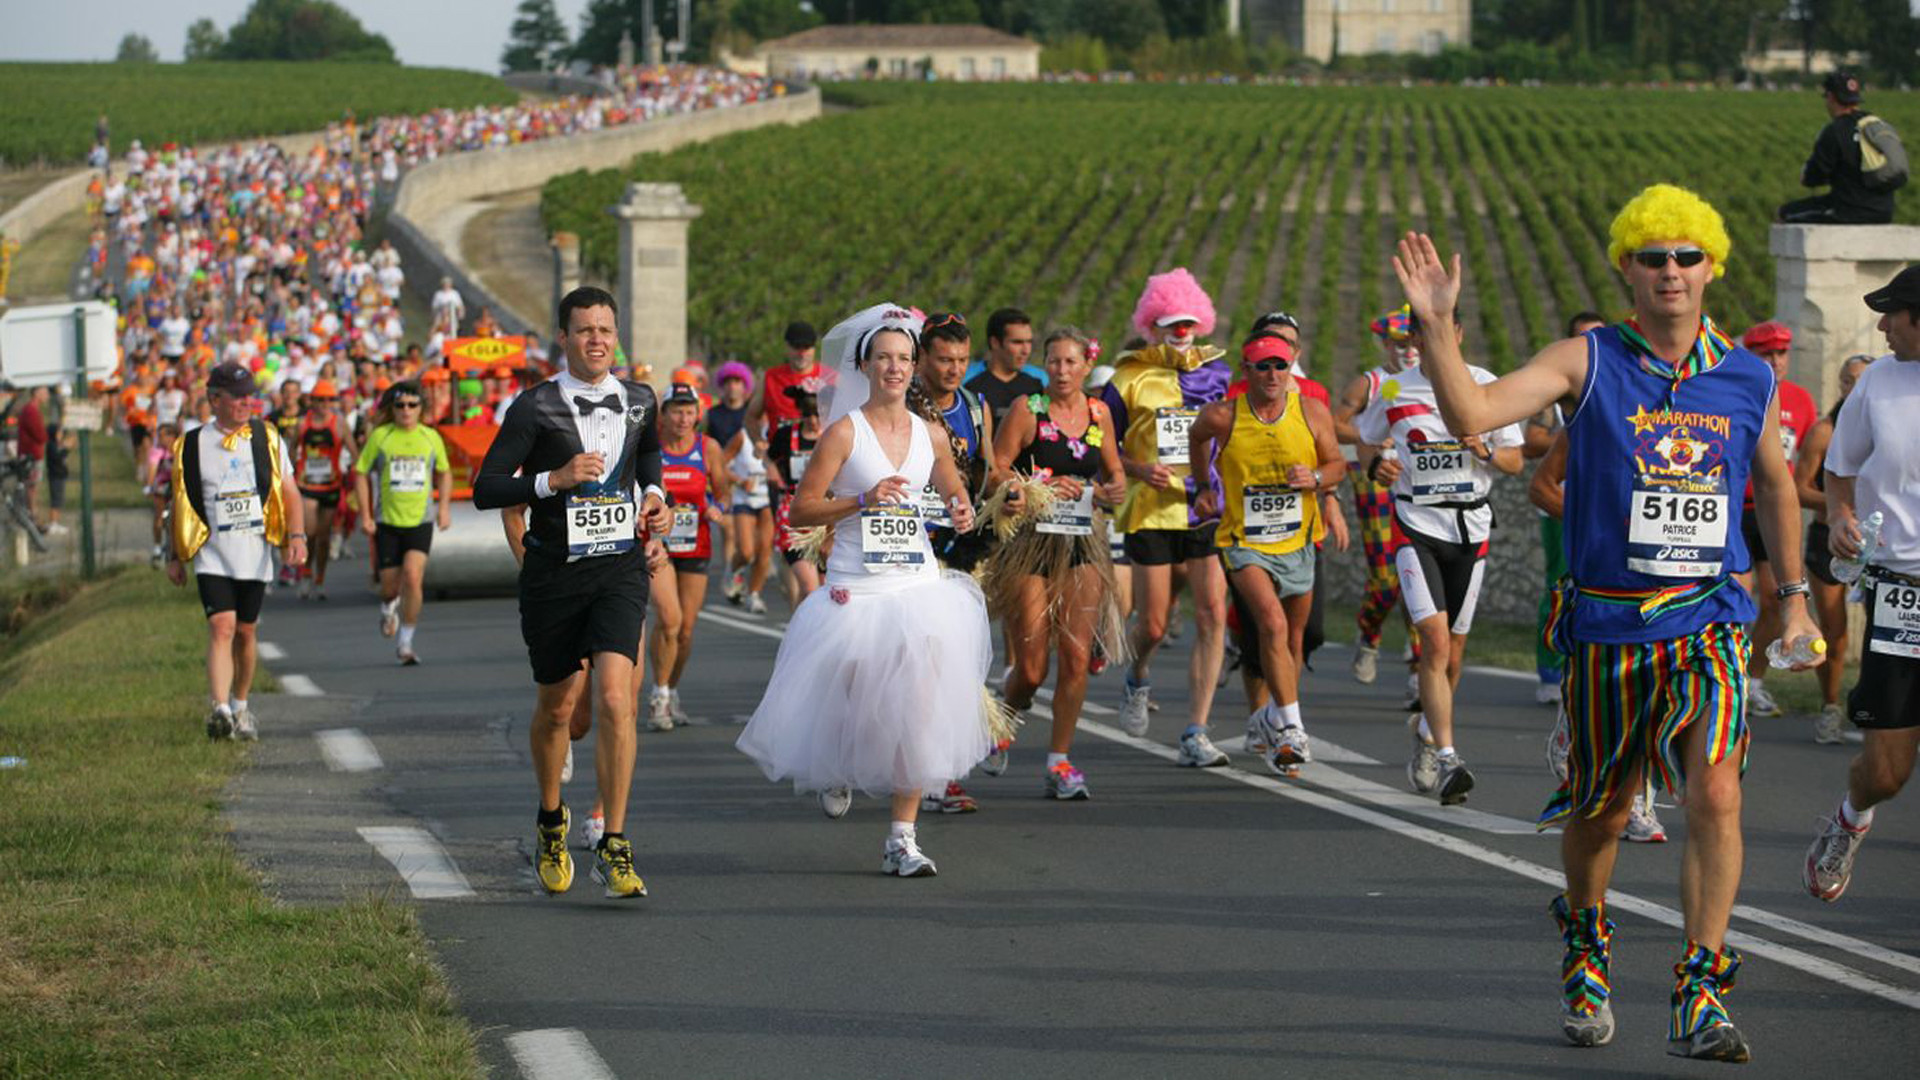 Organizers of the annual Marathon du Médoc have announced that the 36th edition of the race, due to be held in September, will be postponed to 2021